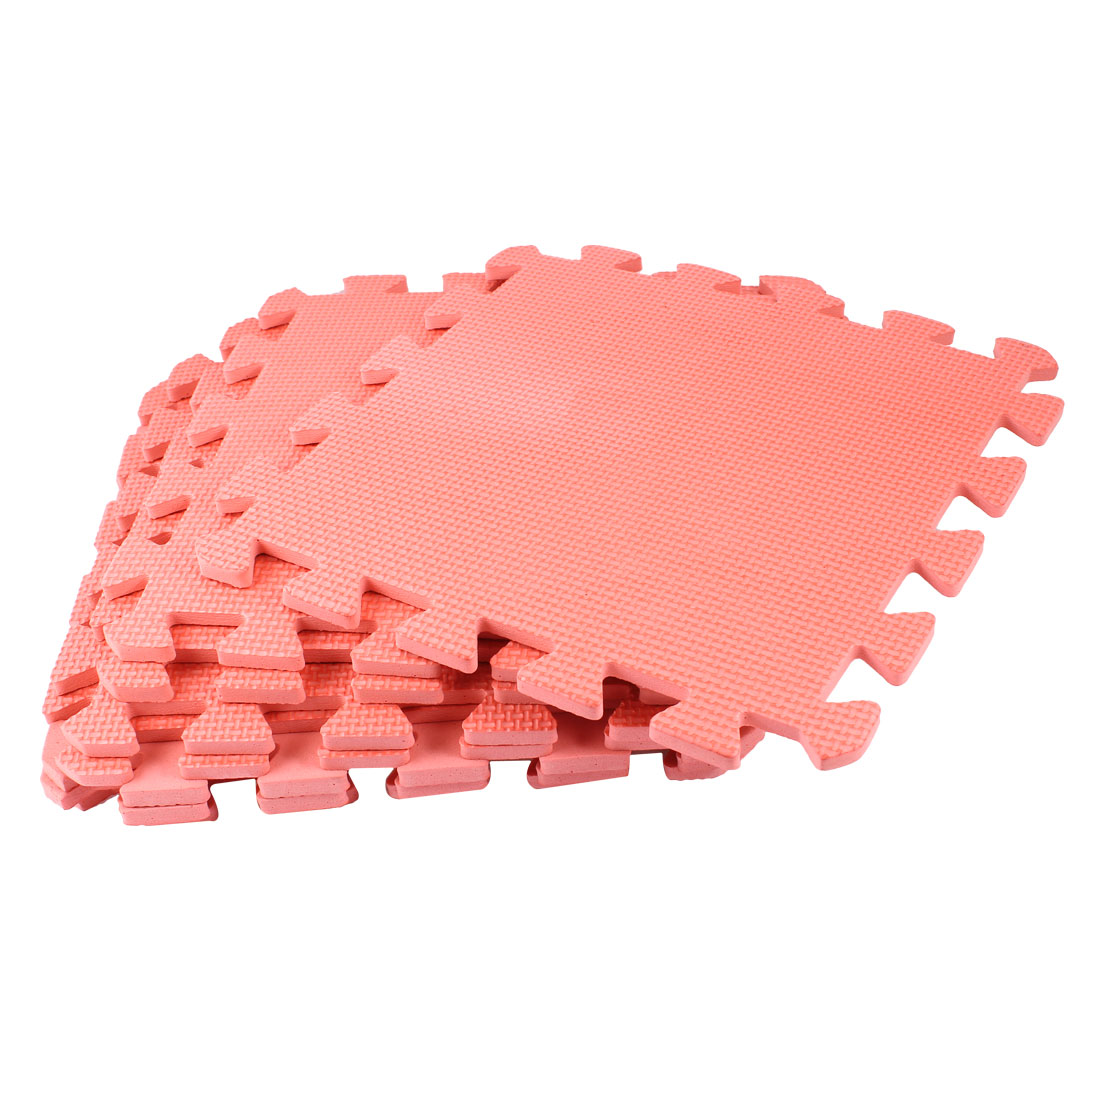 Interlocking Watermelon Red Gym Anti-skid Foam Floor Tiles Mats 9 Pcs